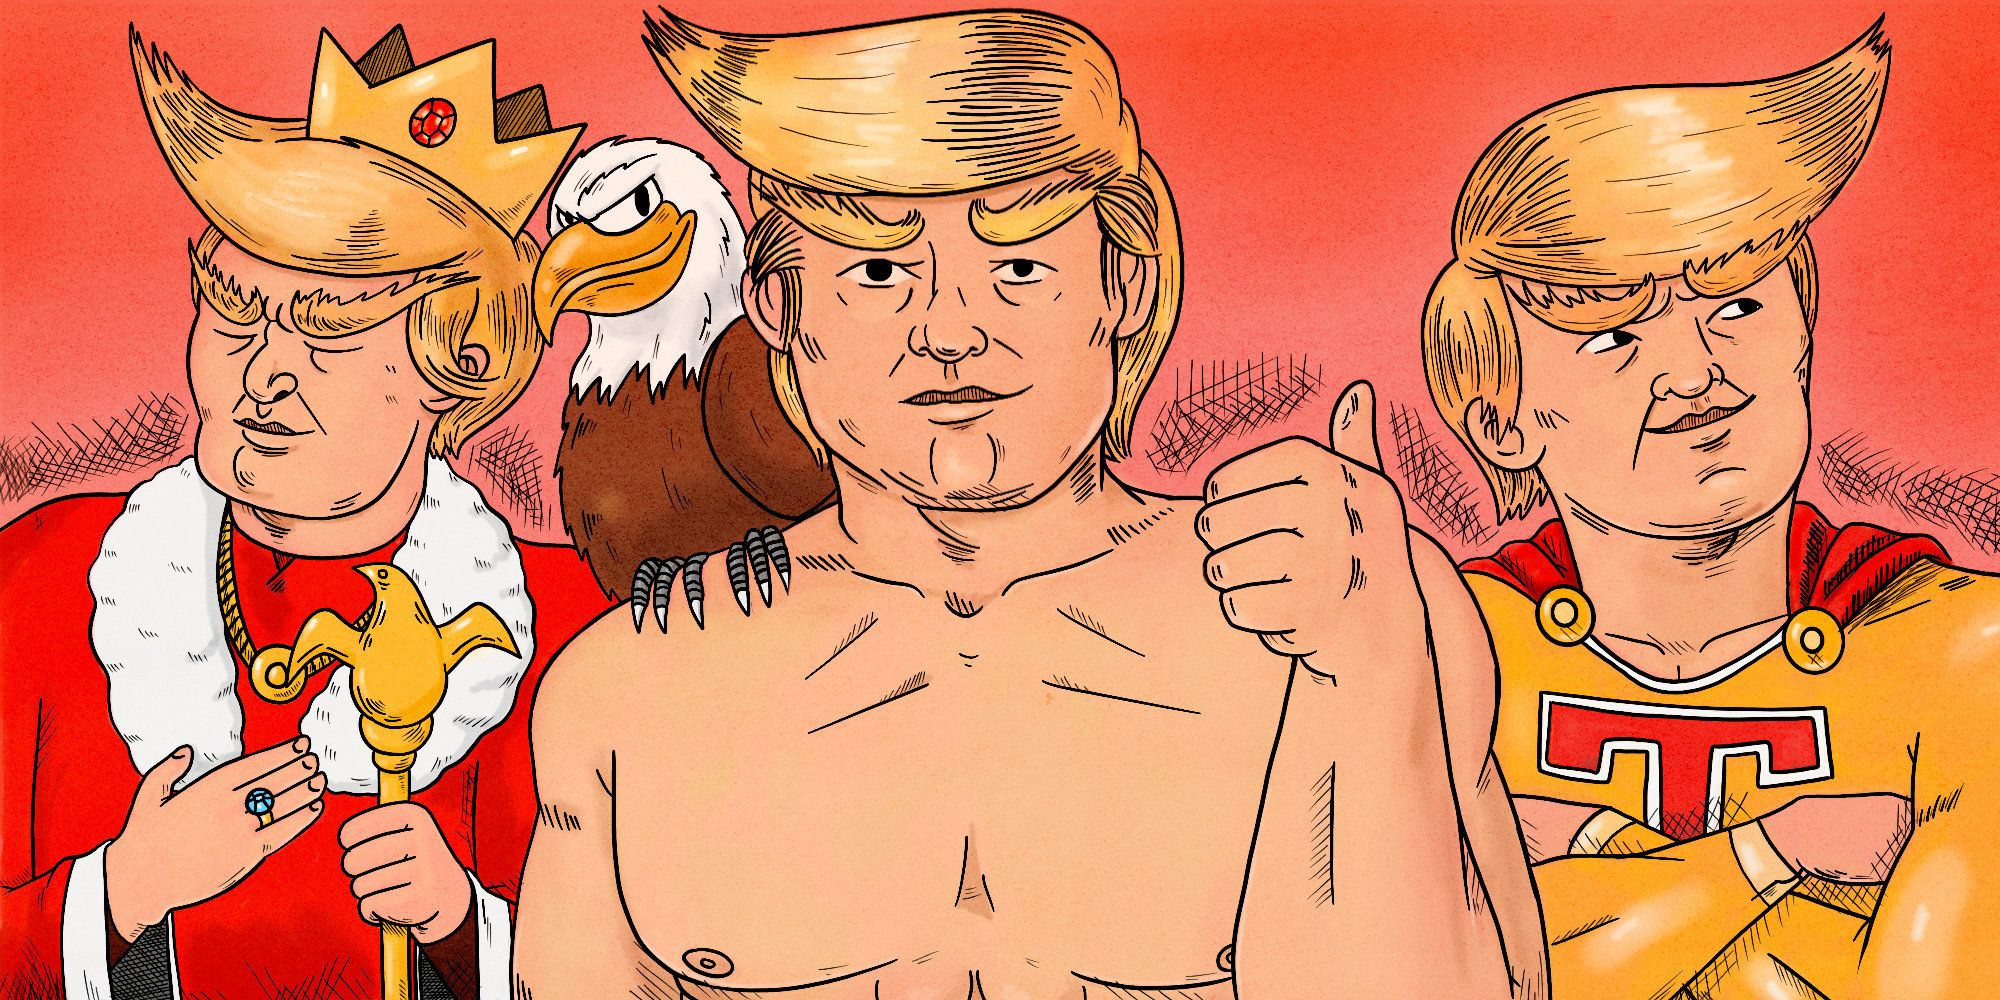 Are Ridiculous Pro-Trump Drawings Art? A HuffPost Discussion.